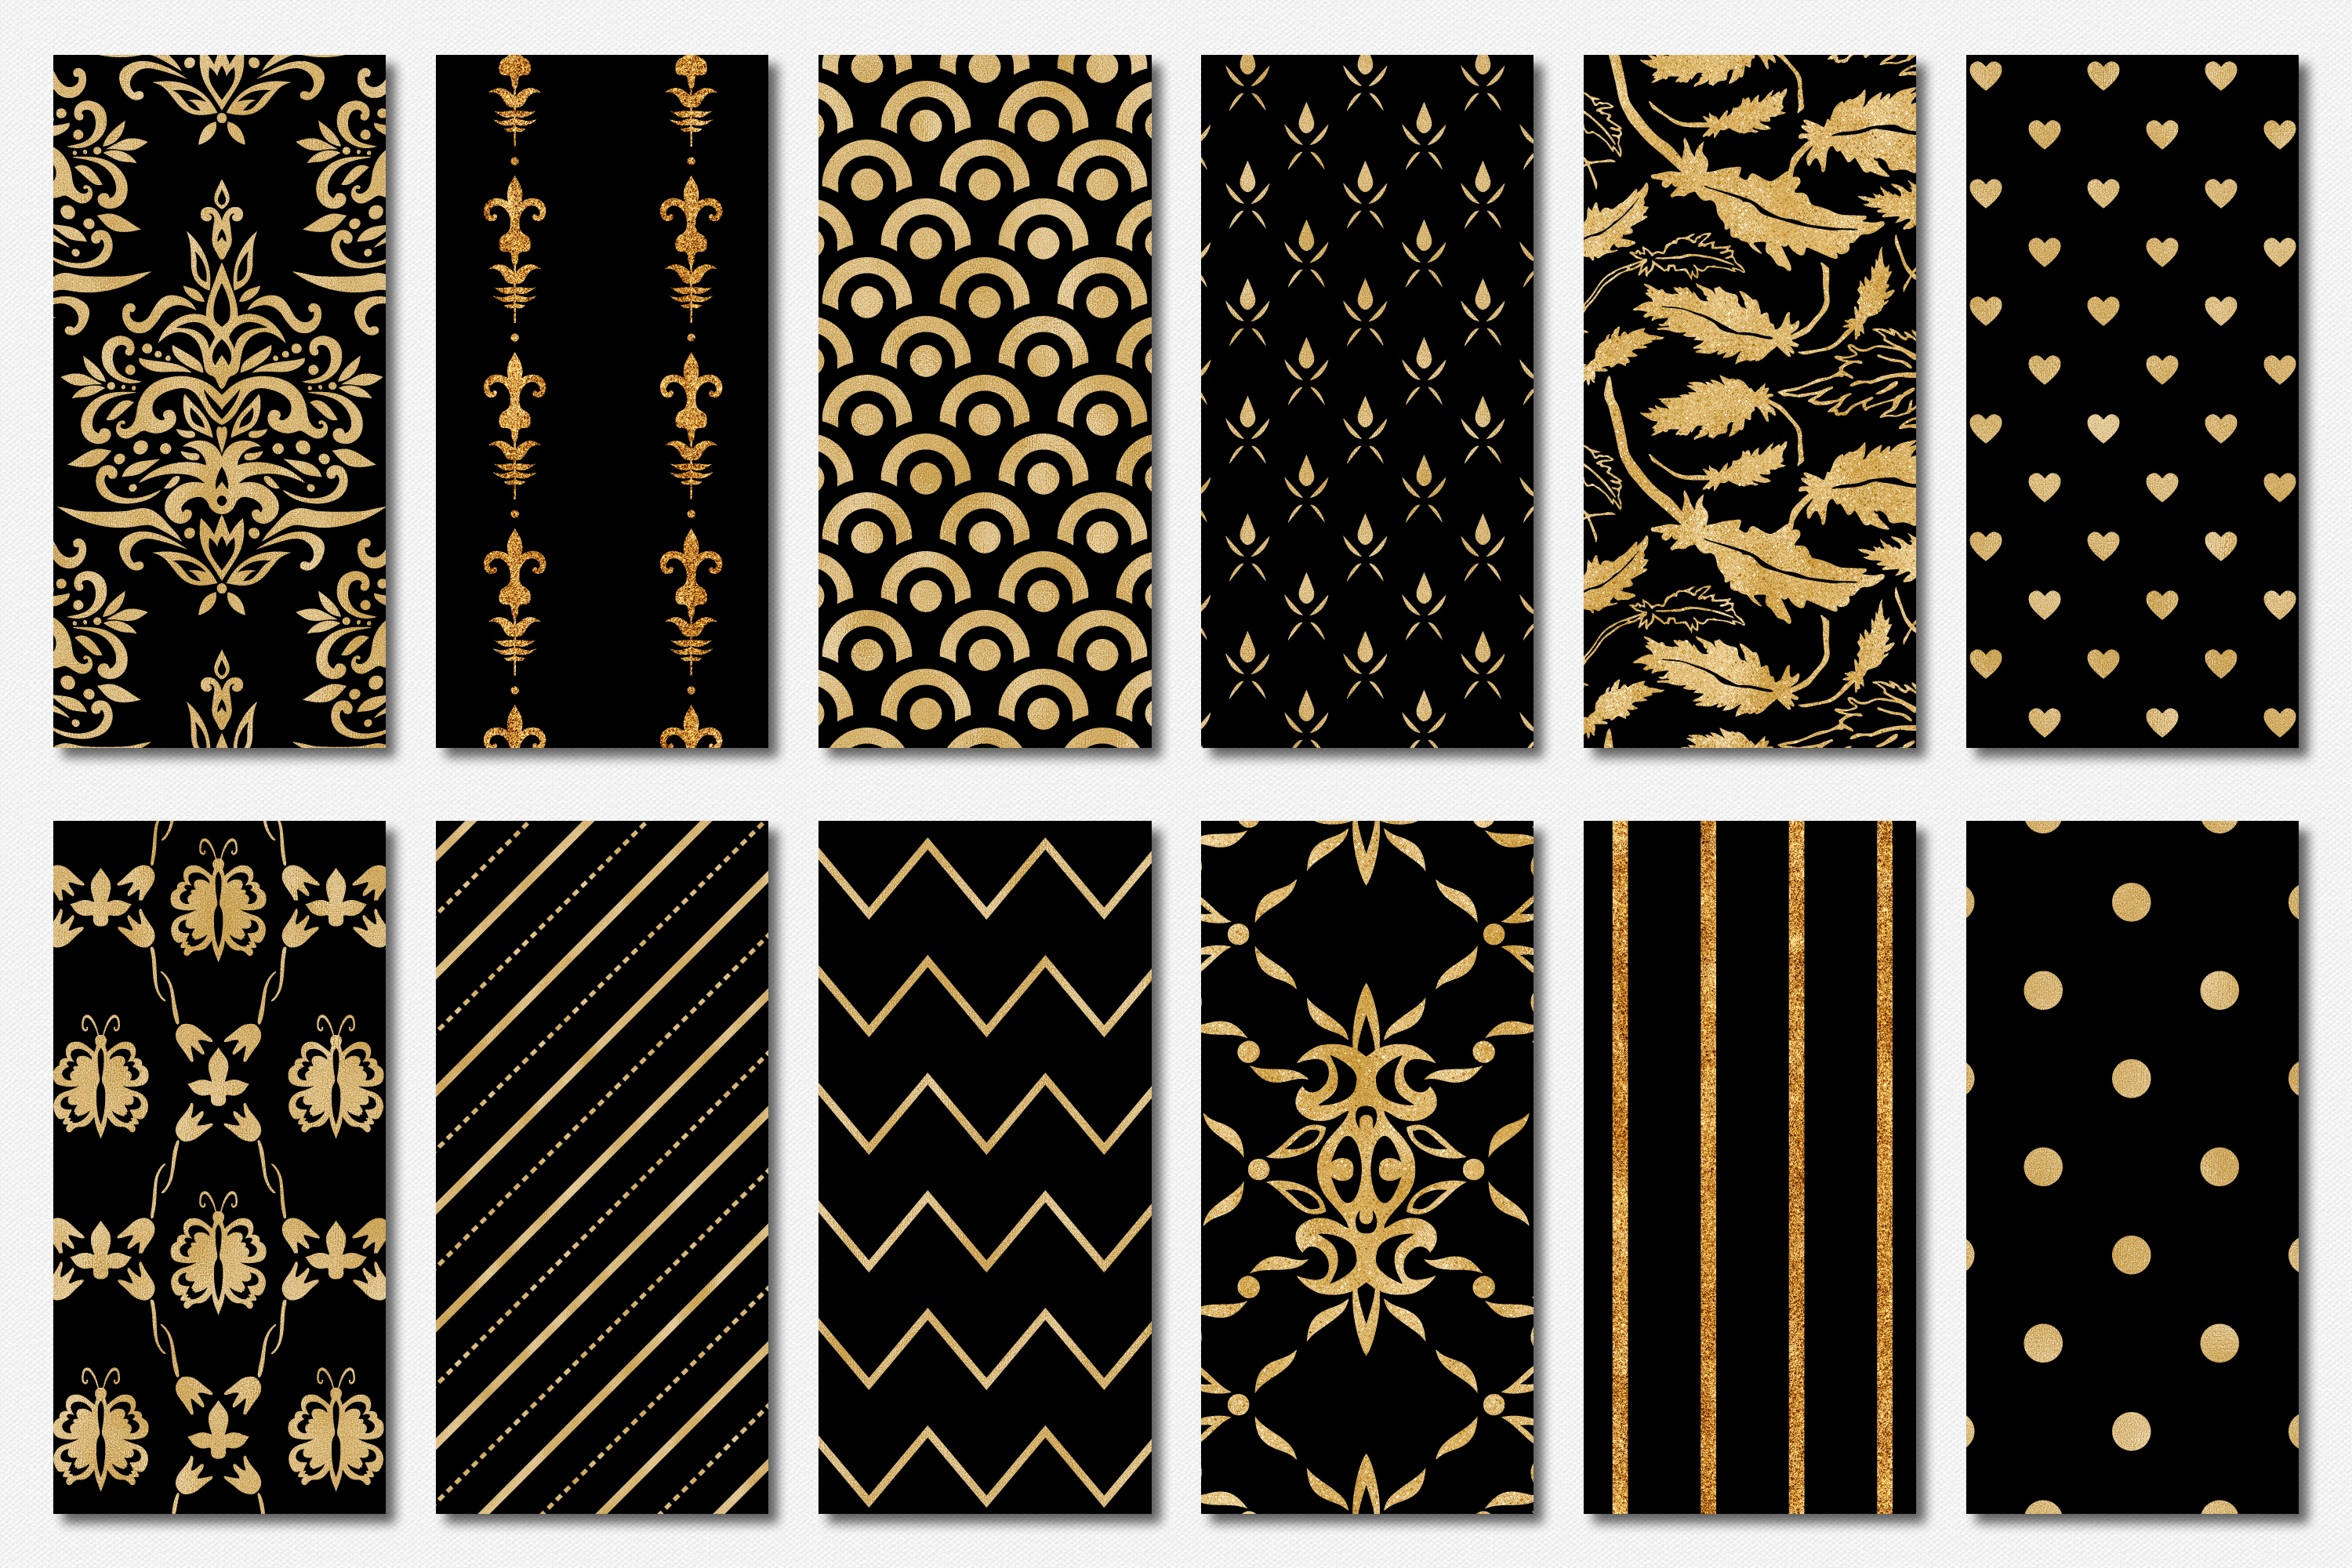 Black and Gold Seamless Papers - Damask & Geometric Patterns example image 3